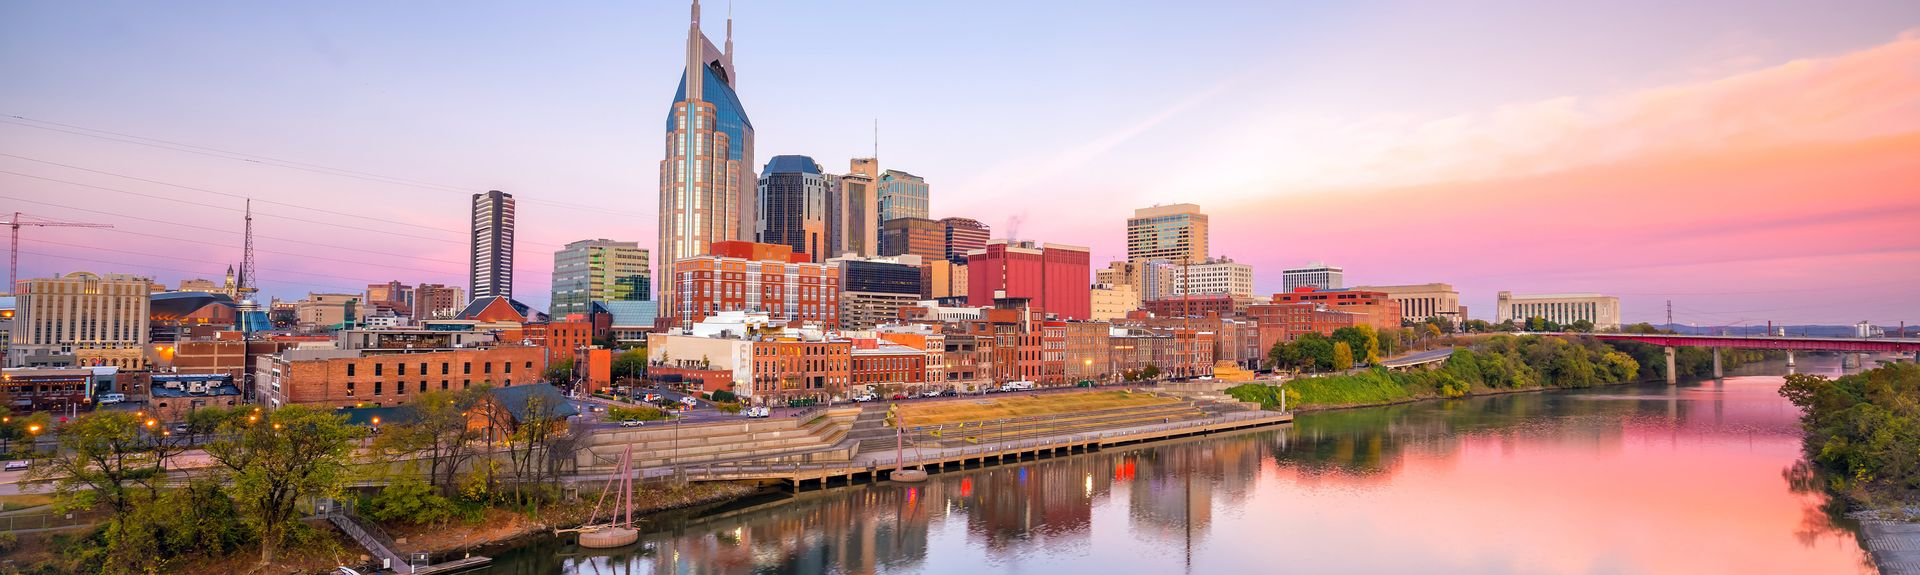 Downtown, Nashville, TN, USA